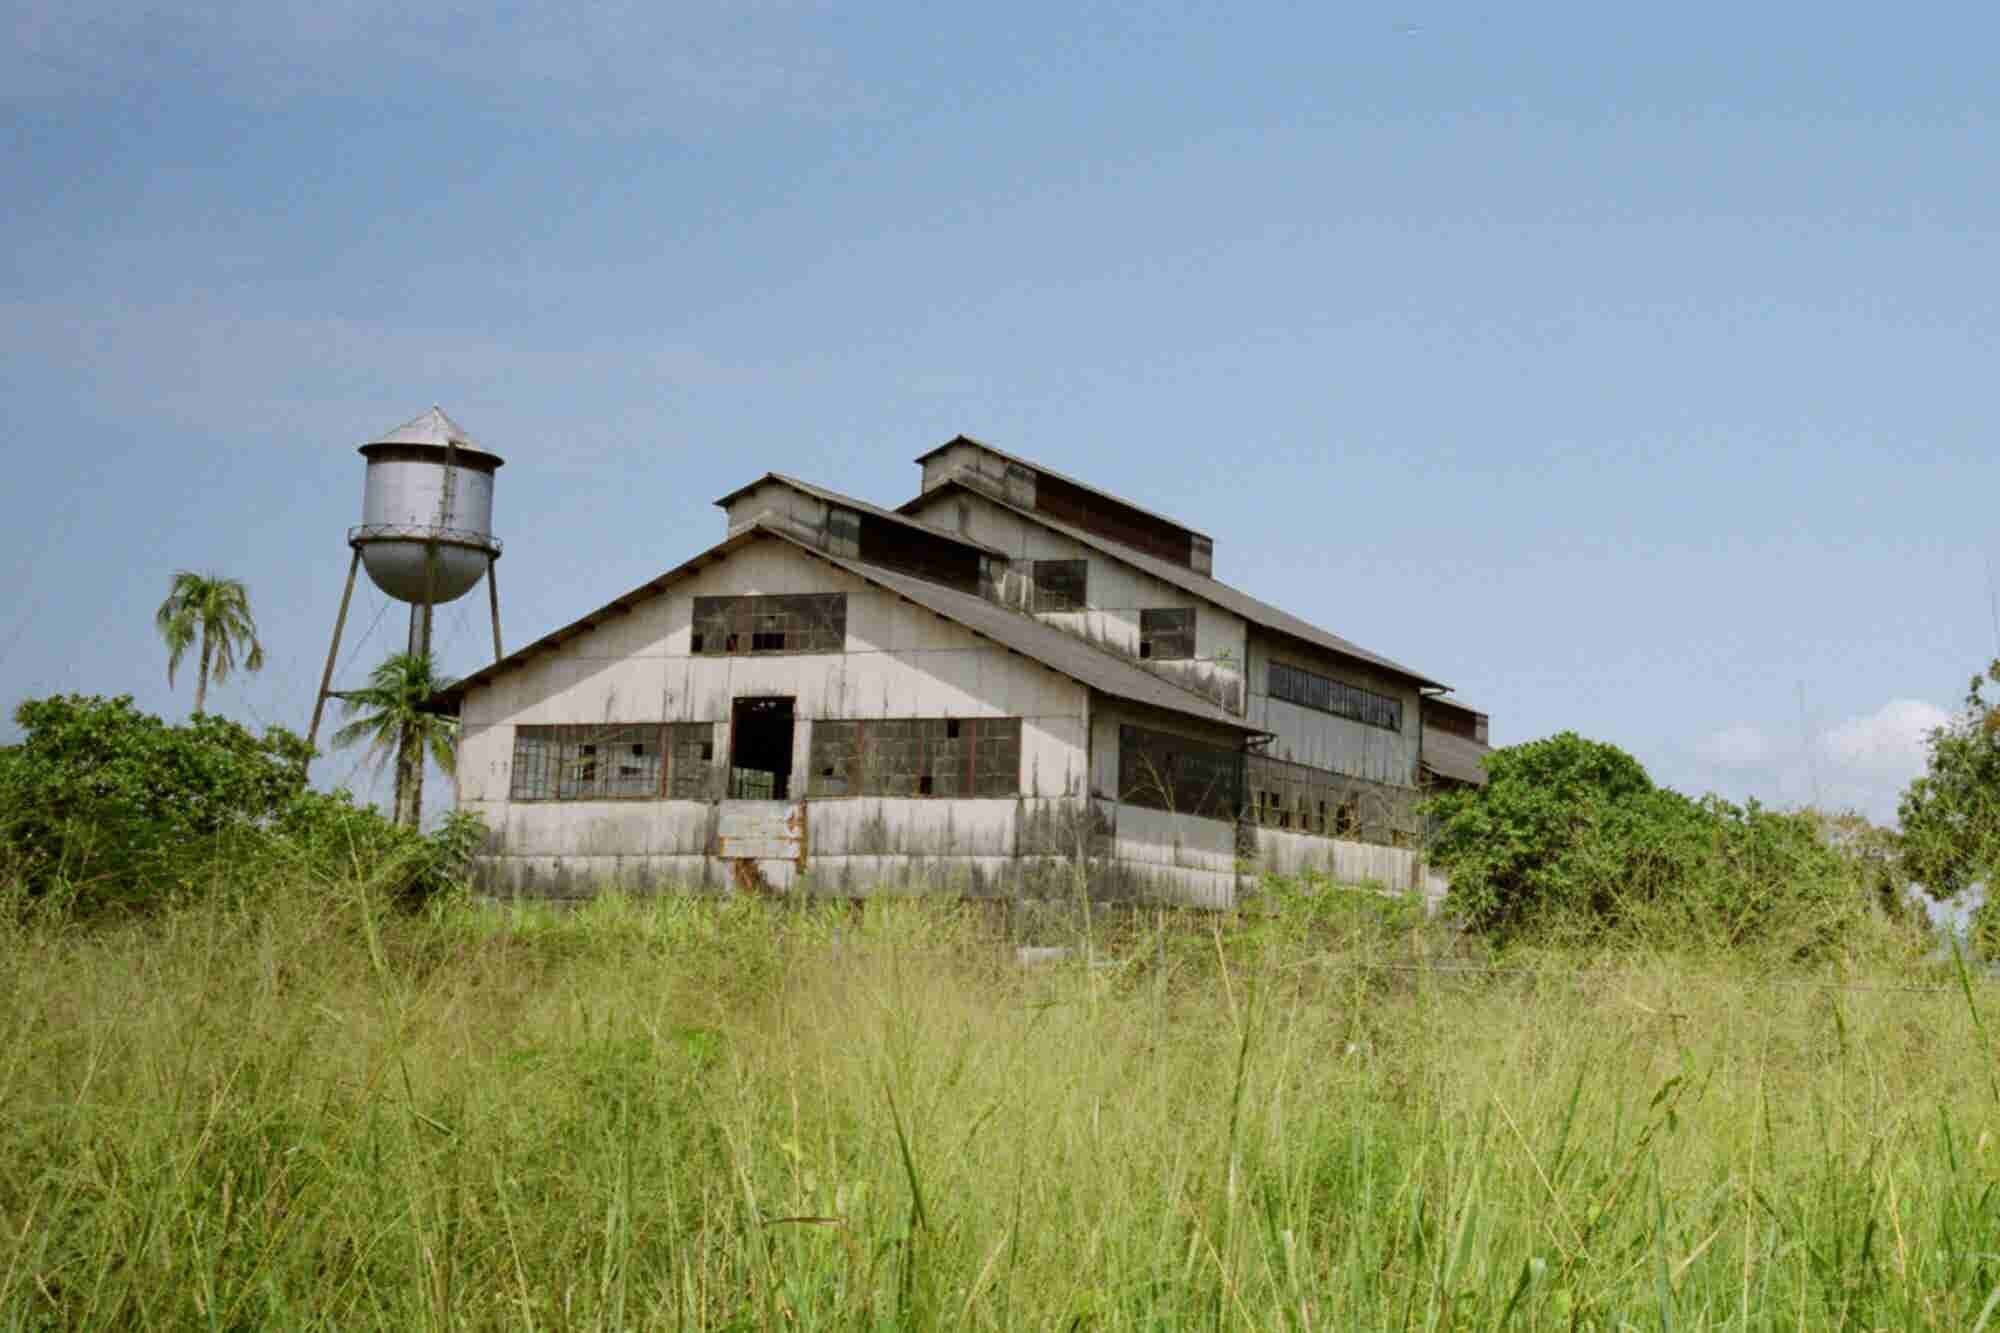 Ever Heard Of Henry Ford's Colossal Failed City in the Jungle?